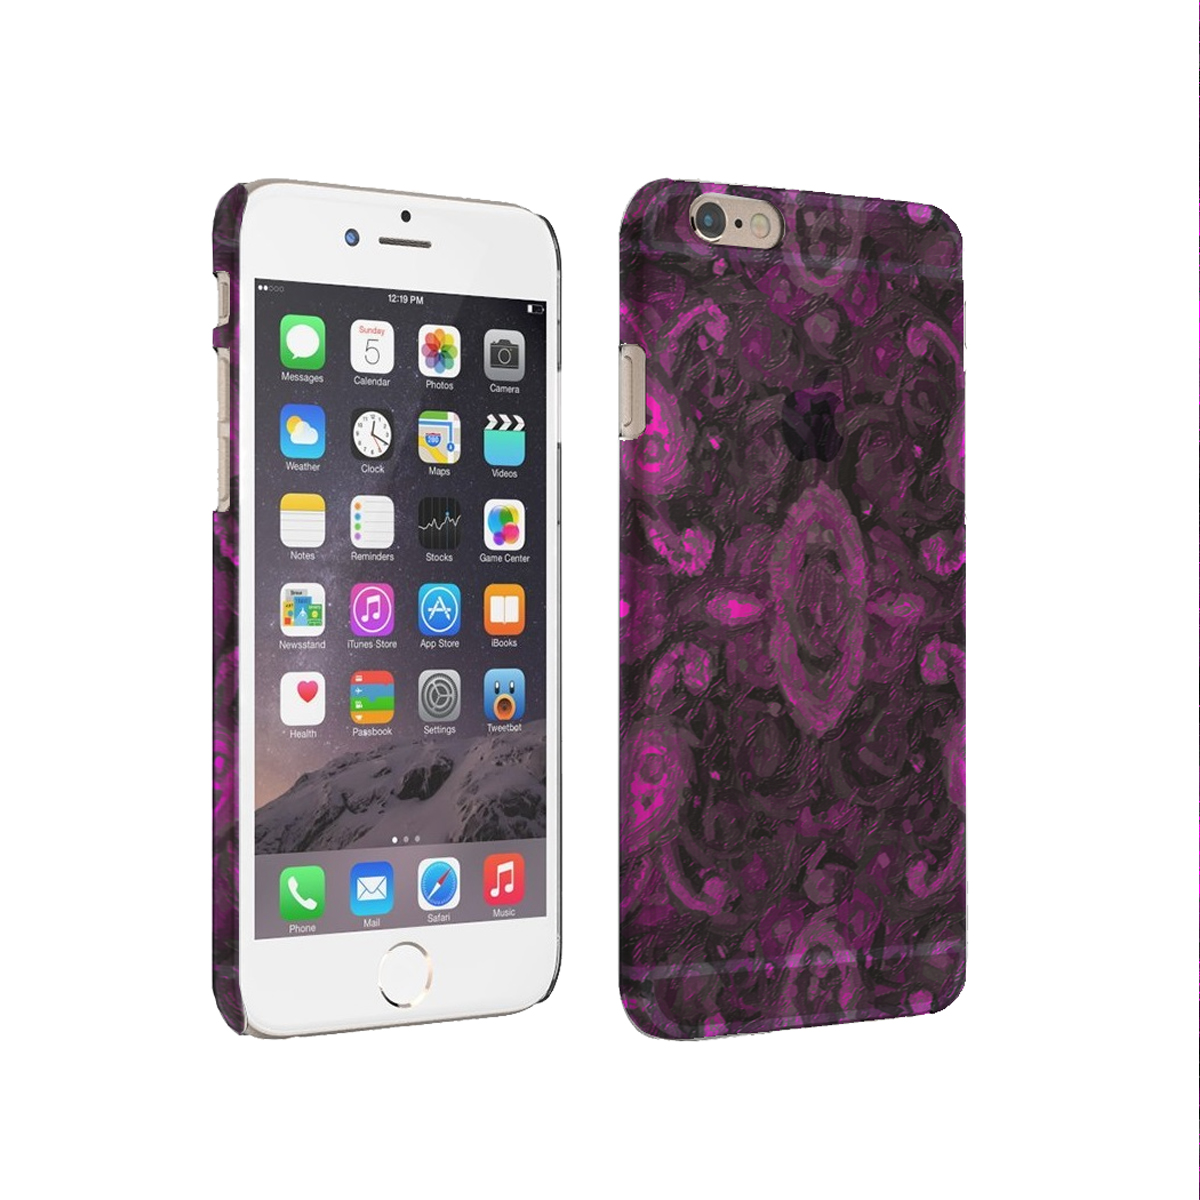 KuzmarK iPhone 6 Plus Rubber Cover Case - Paisley Pink Painting